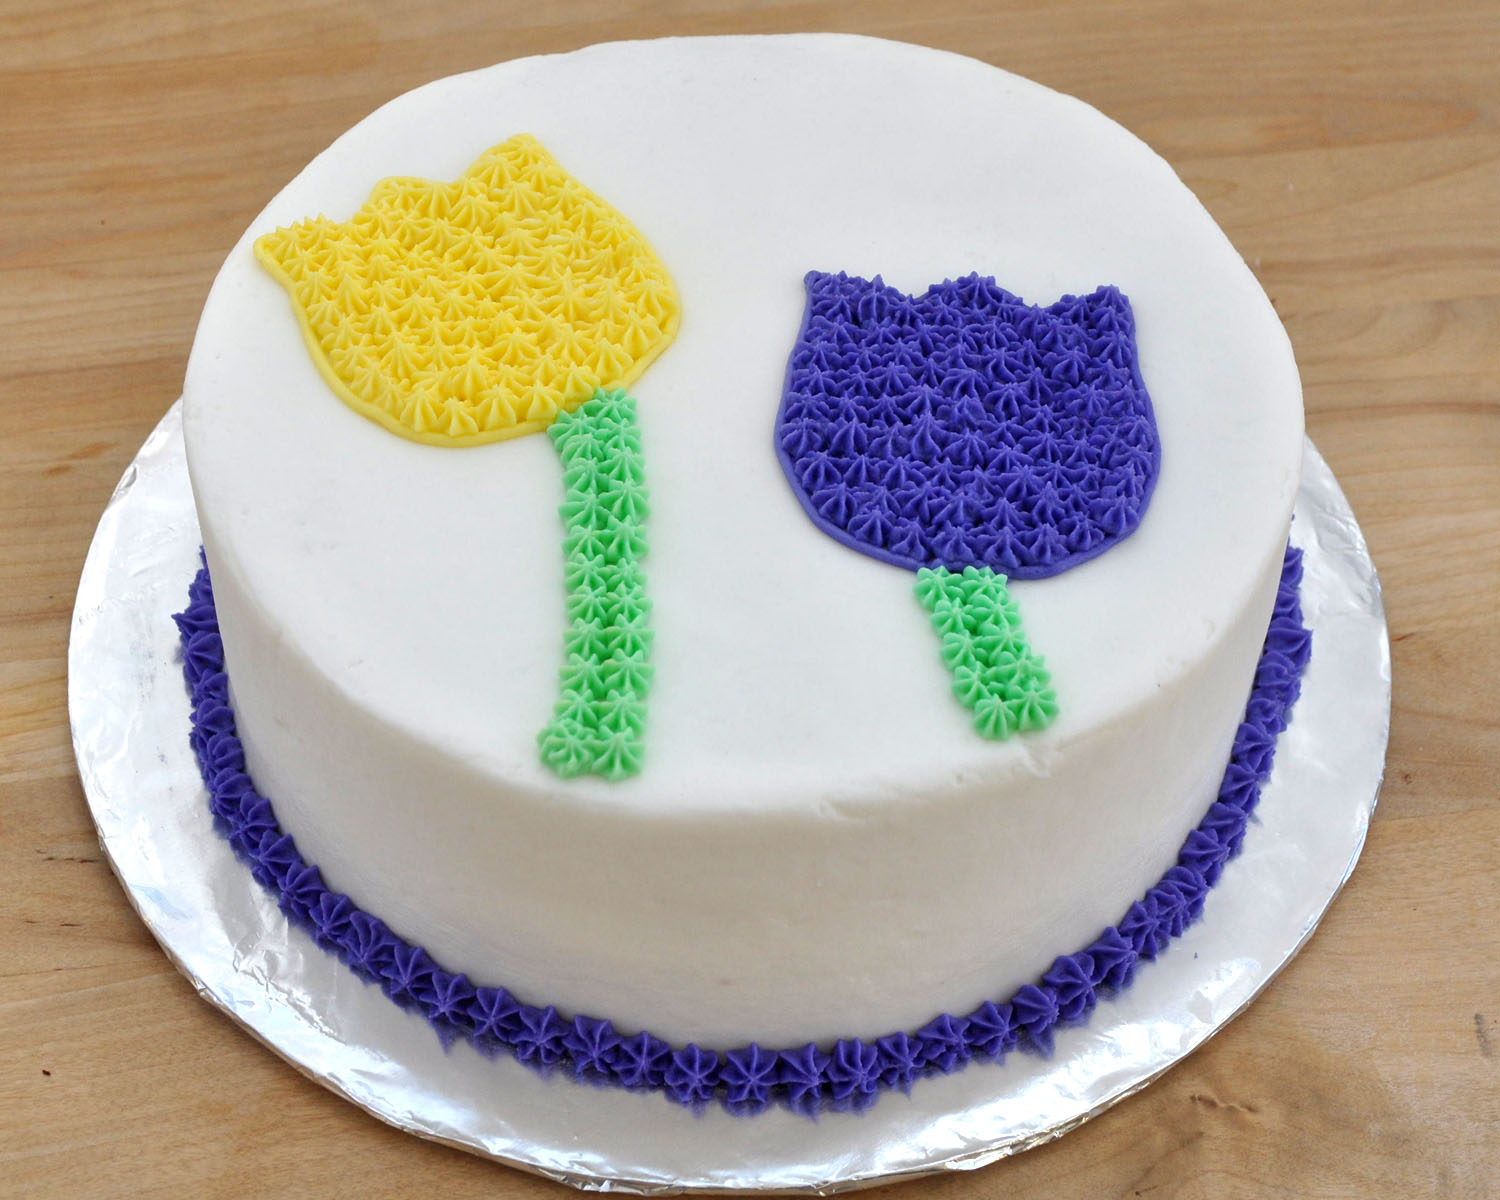 Beki Cooks Cake Blog: Cake Decorating 101 - Easy Birthday Cake